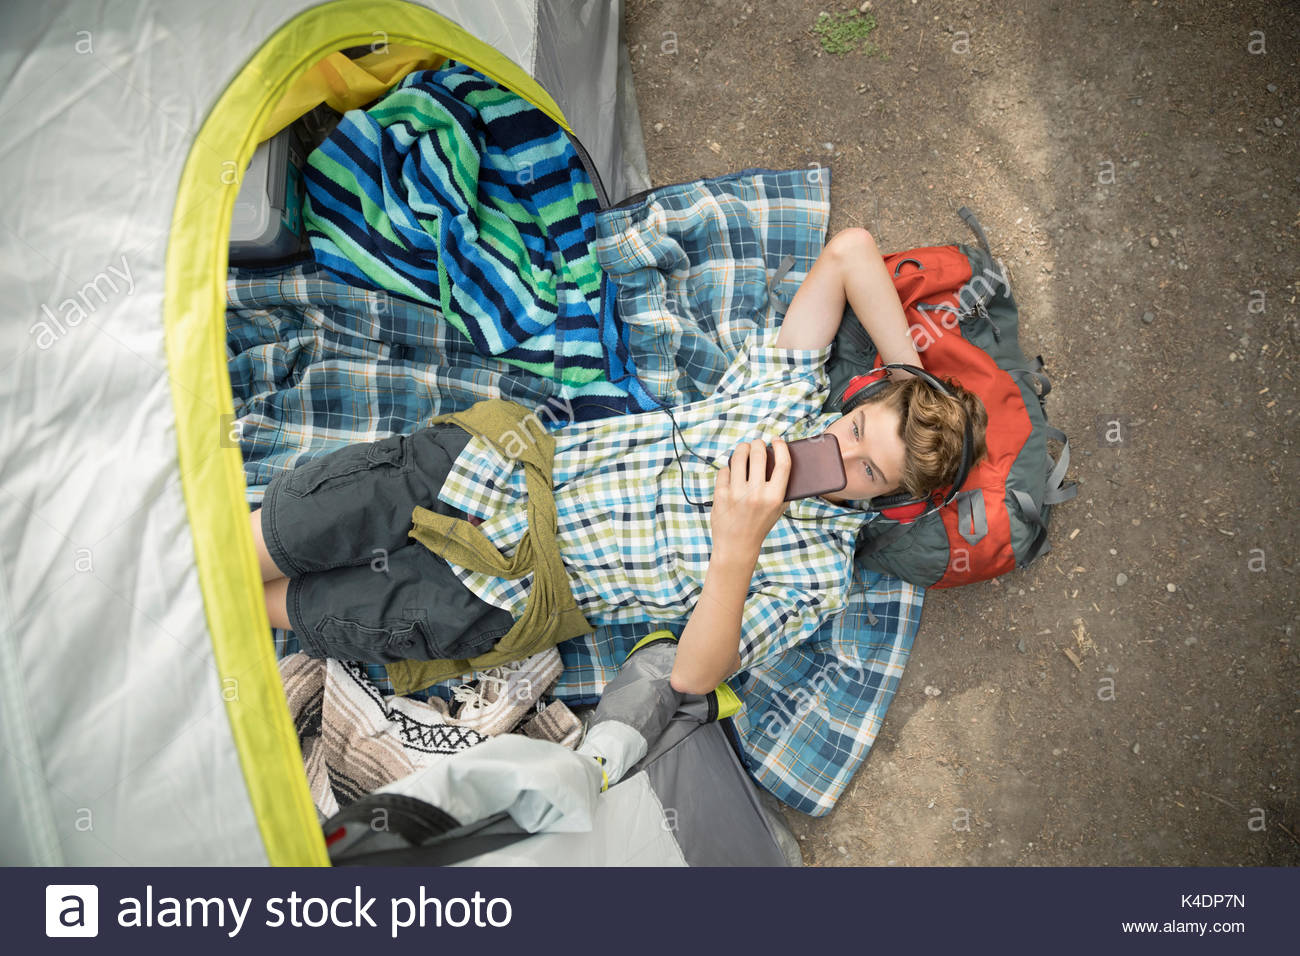 Overhead view teenage boy relaxing, camping and listening to music with headphones and mp3 player in tent - Stock Image